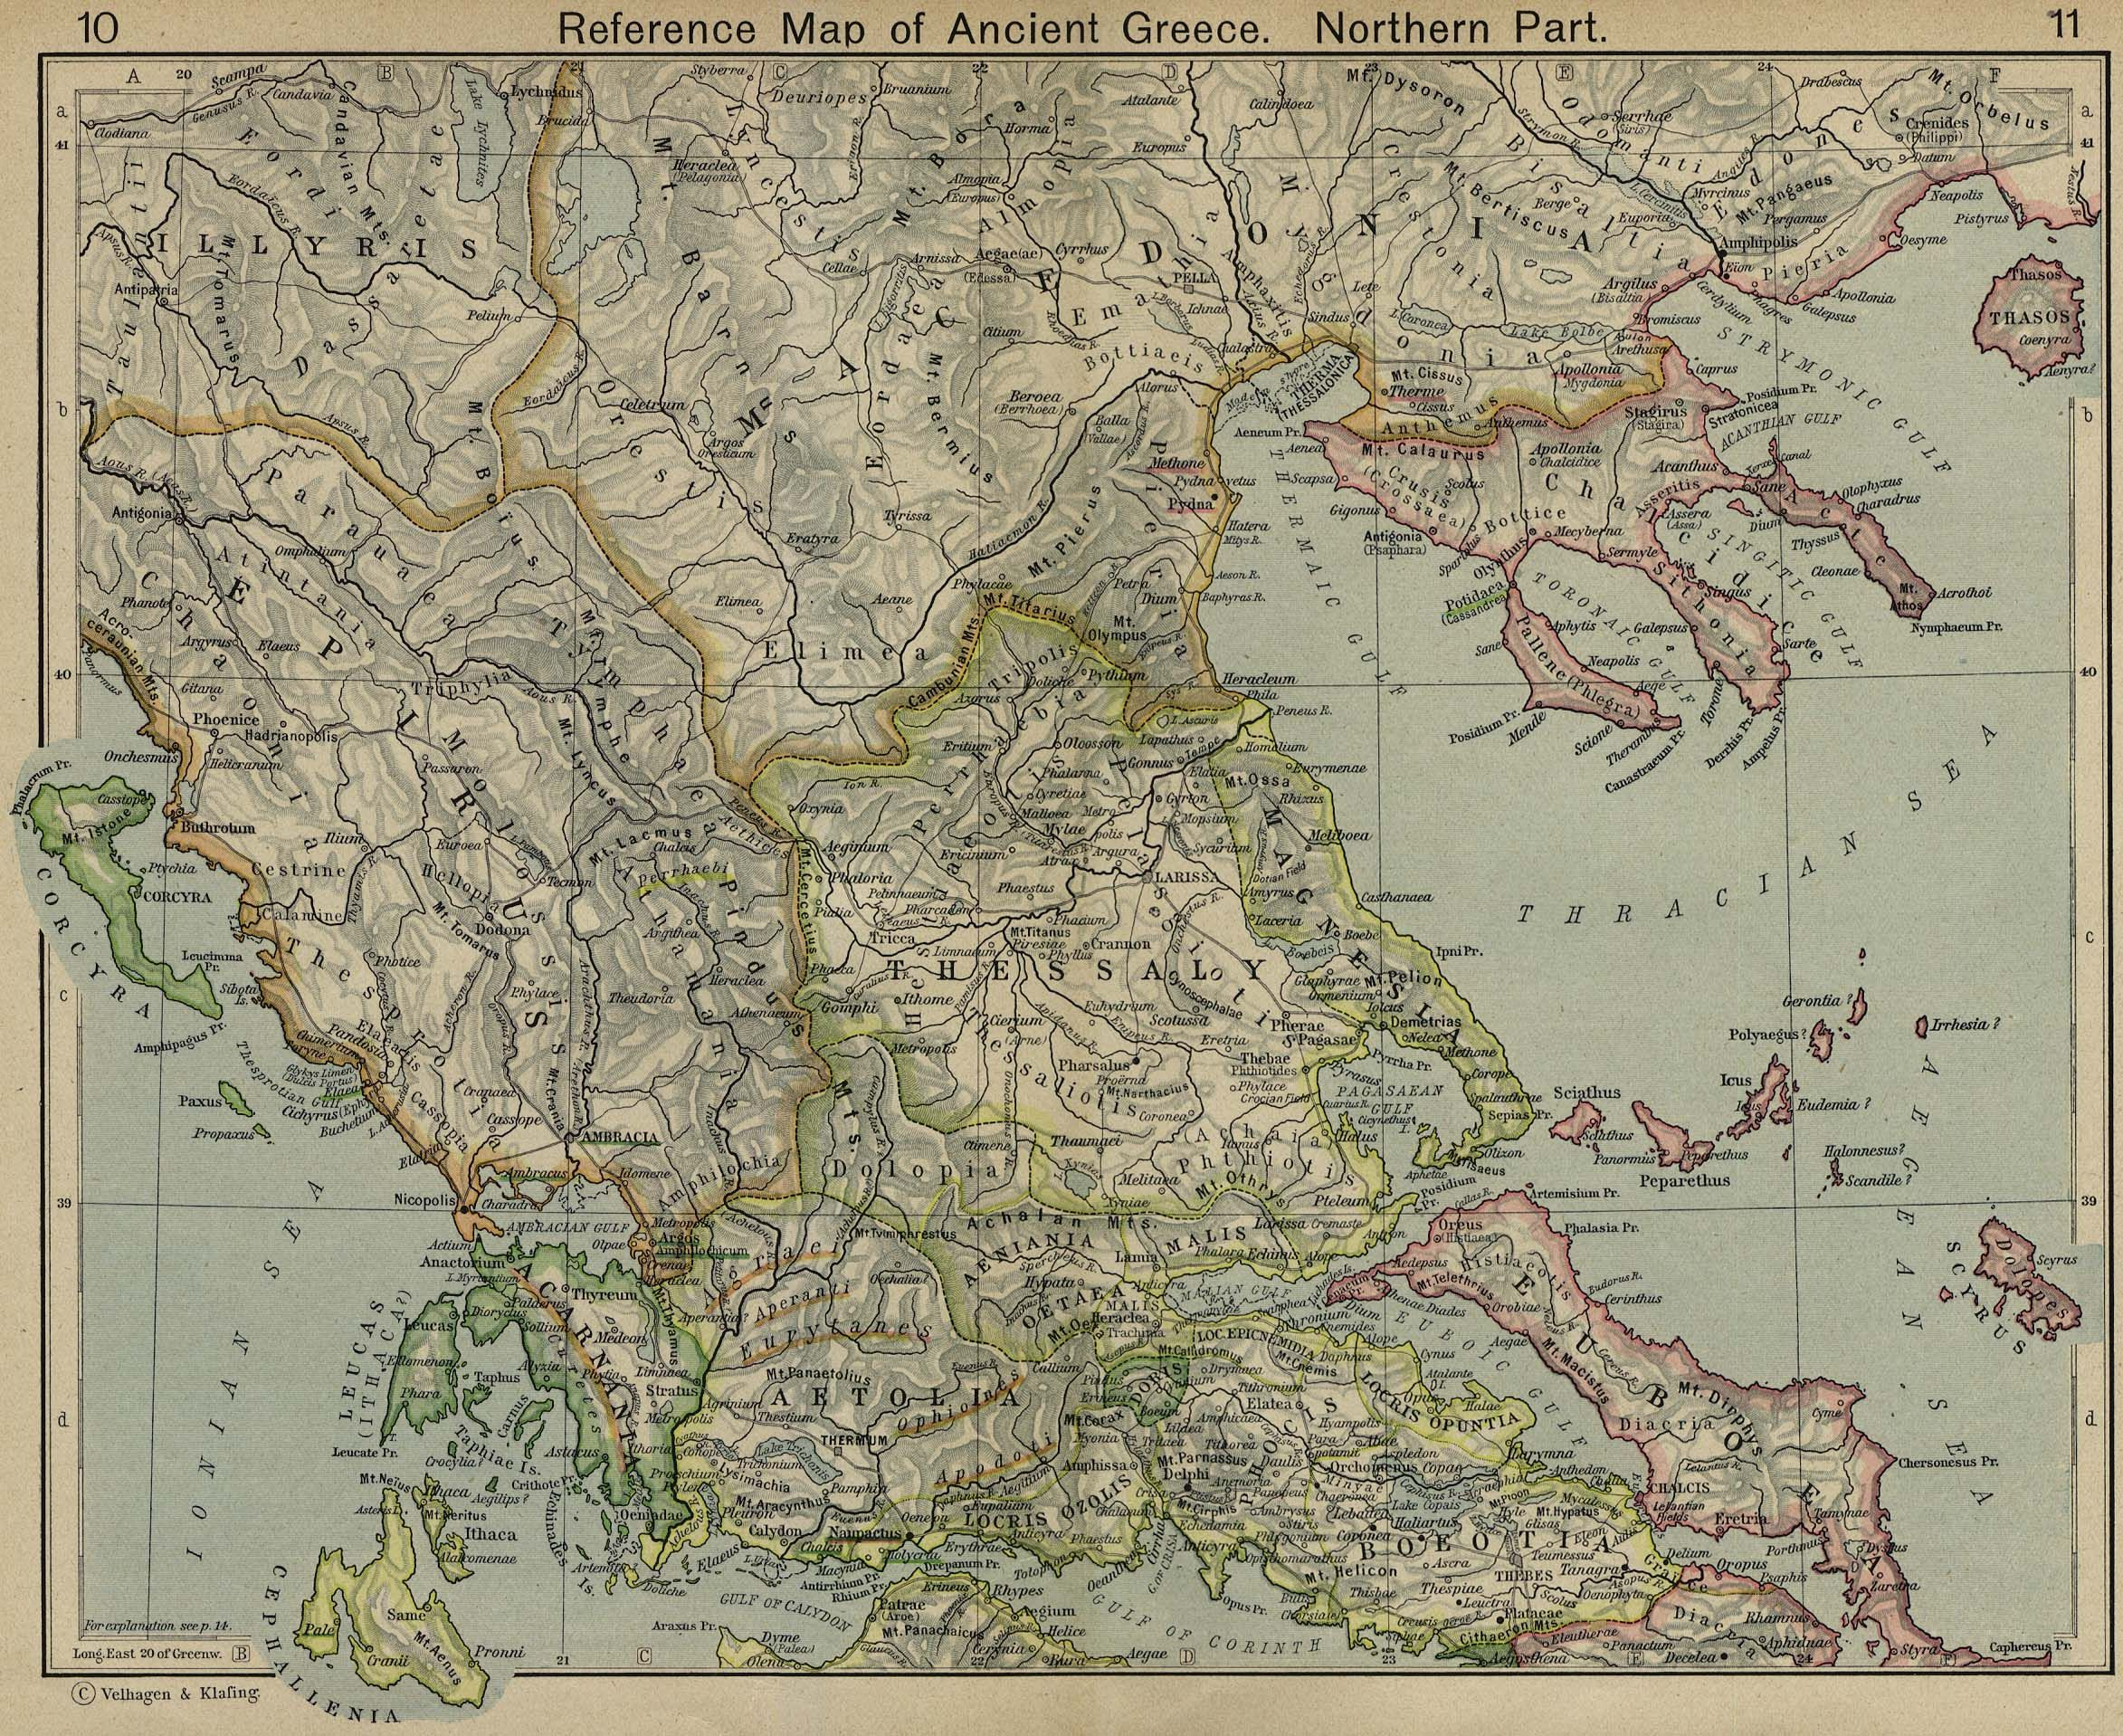 Reference map of ancient greece northern part maps pinterest get better acquainted with ancient greece with this collection of maps showing features of its layout and landscape gumiabroncs Images